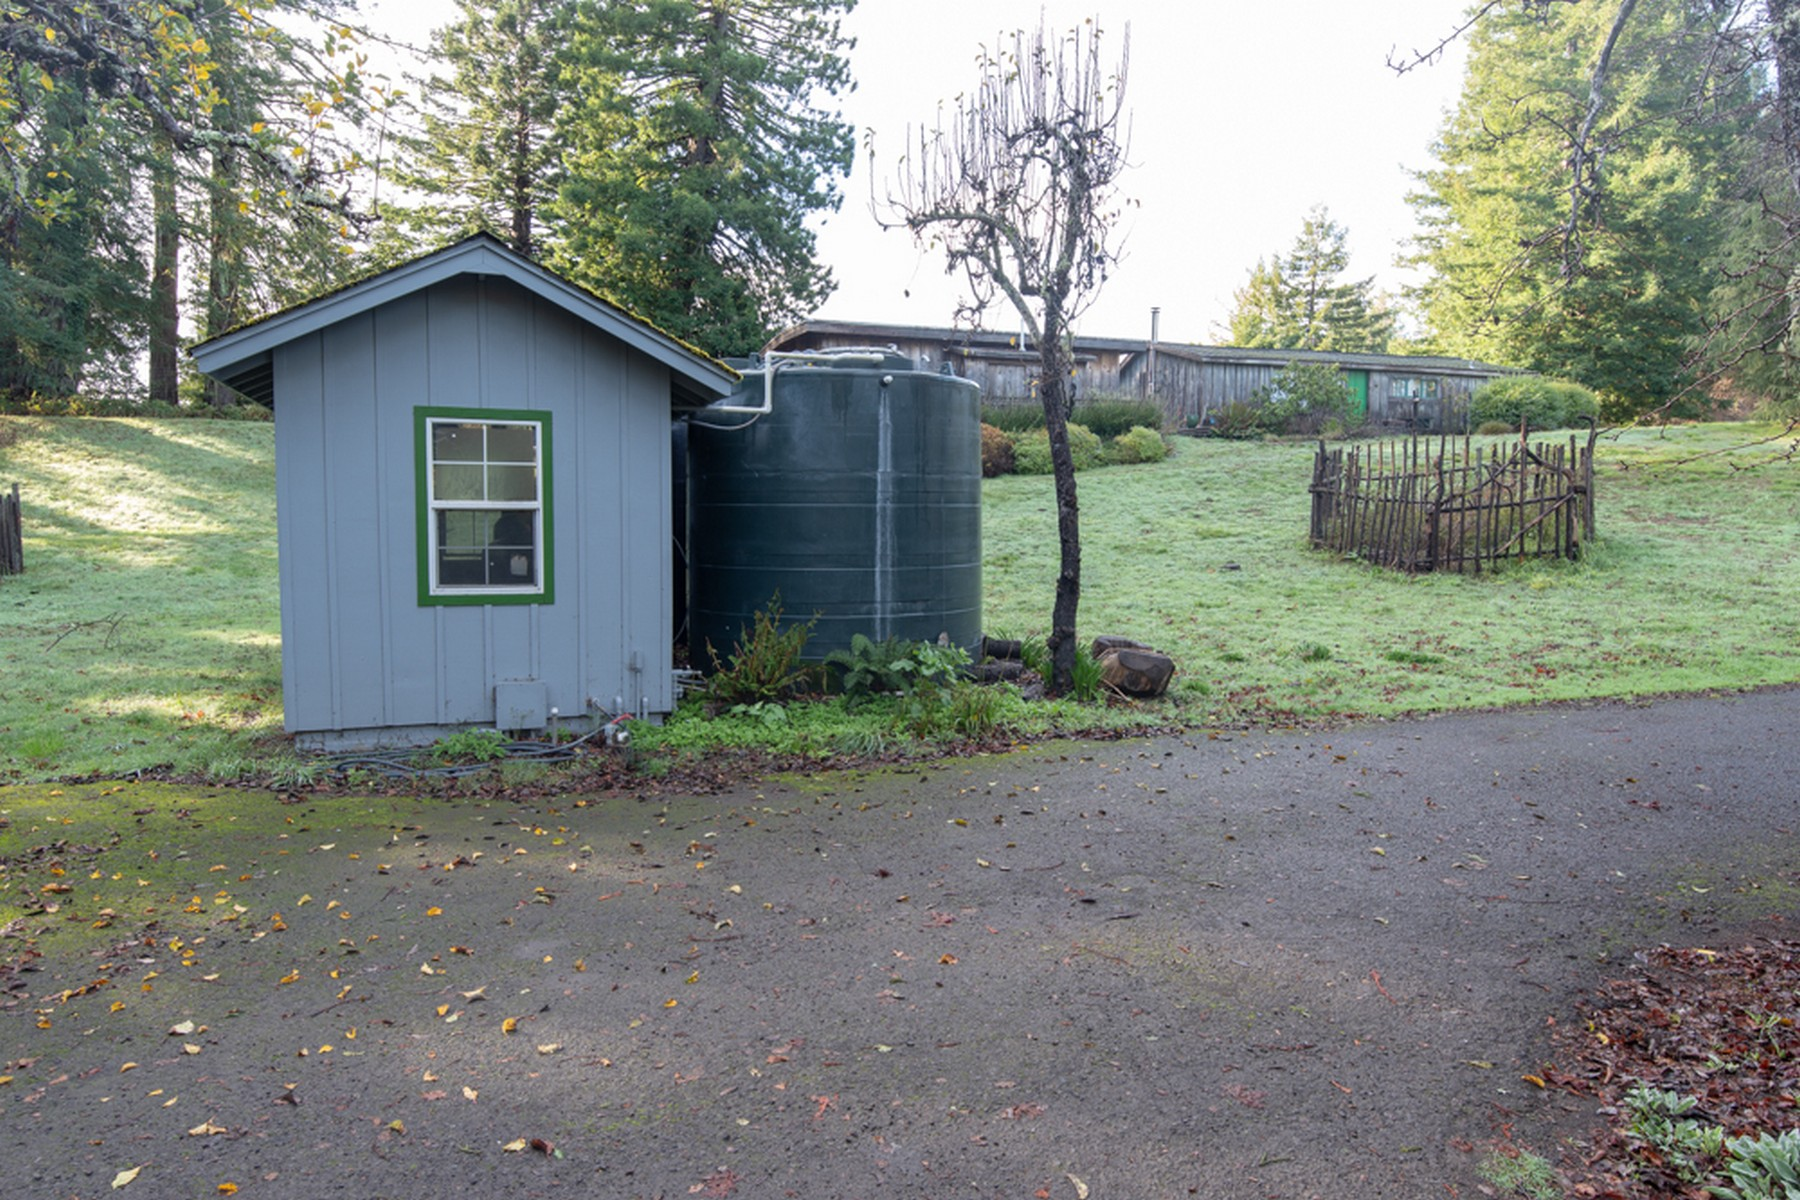 Additional photo for property listing at 31800 Bruhel Point Road Fort Bragg, California 95437 Estados Unidos